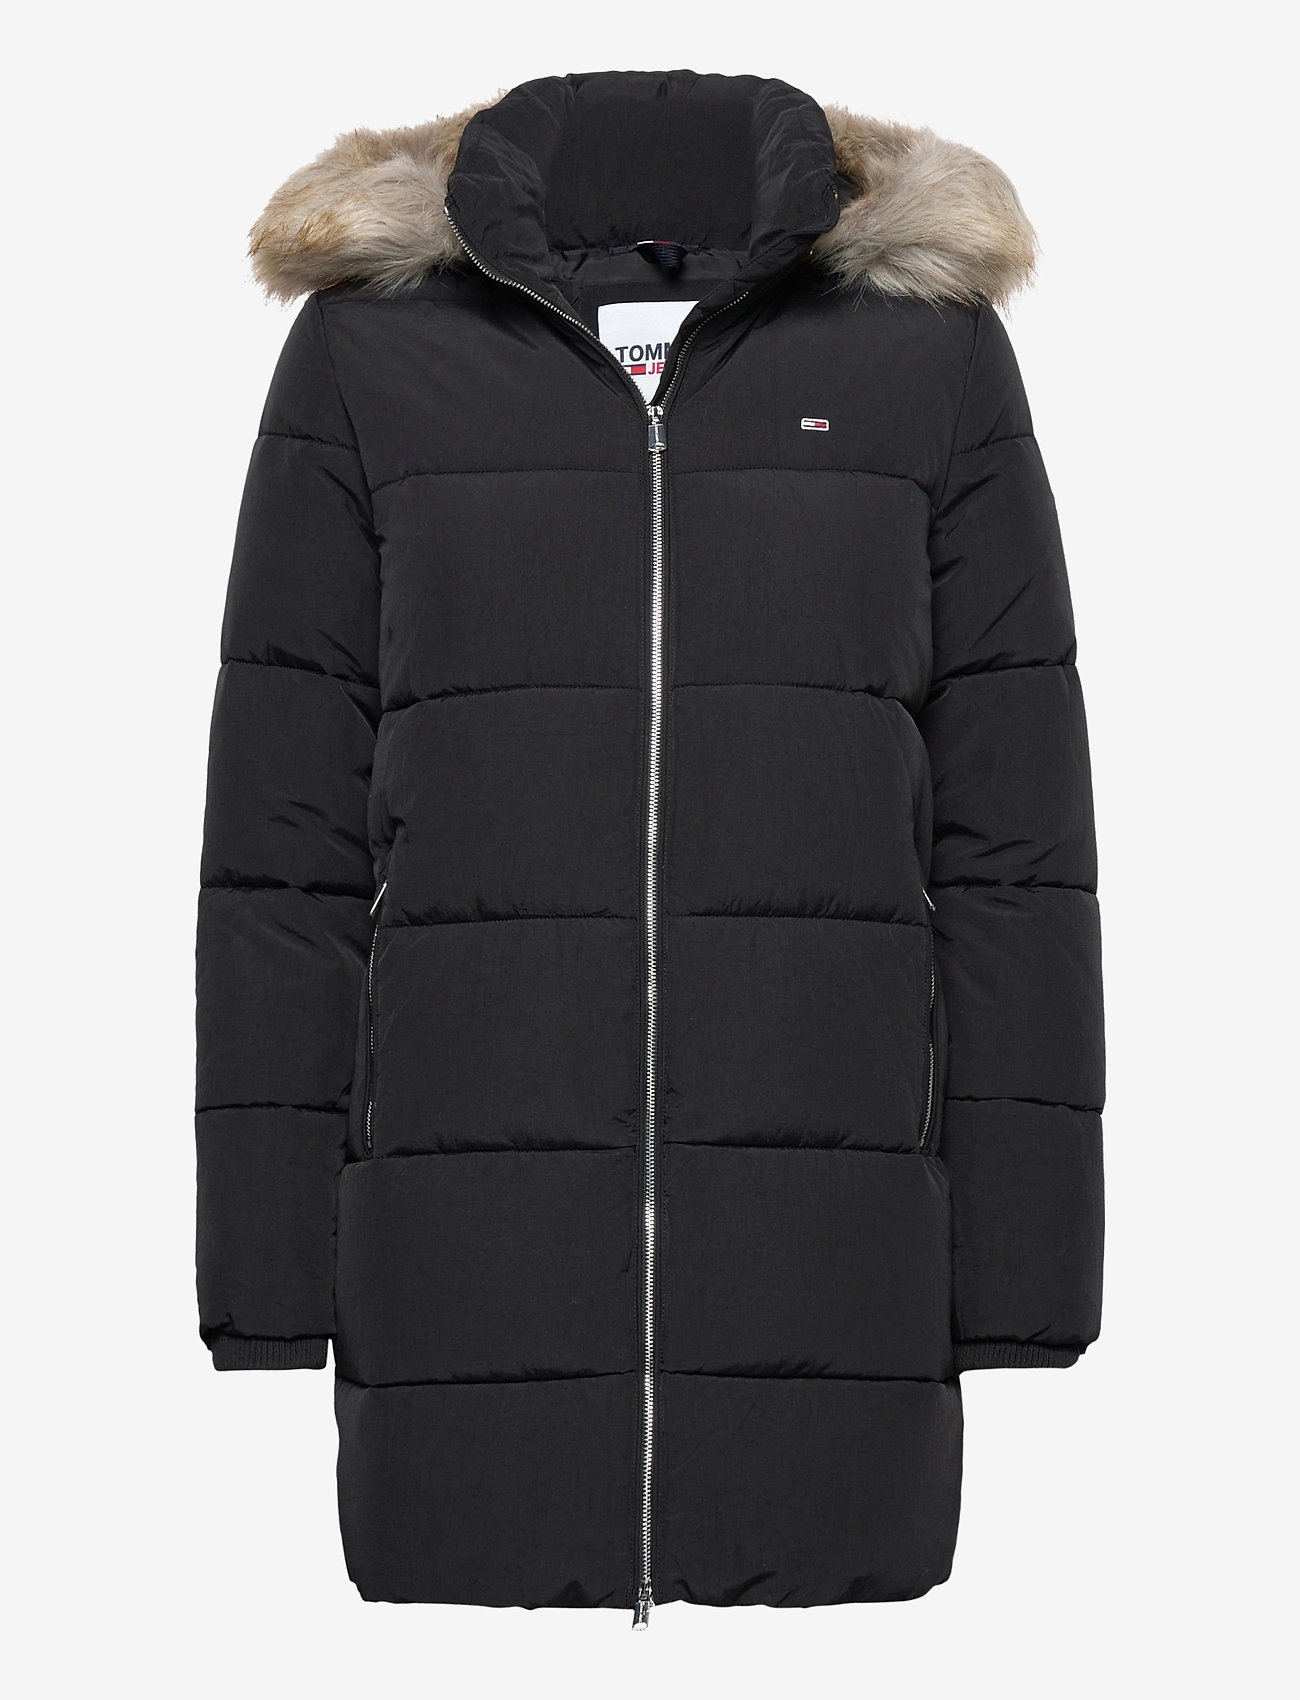 Tommy Jeans - TJW MODERN PUFFA COAT - padded coats - black - 0